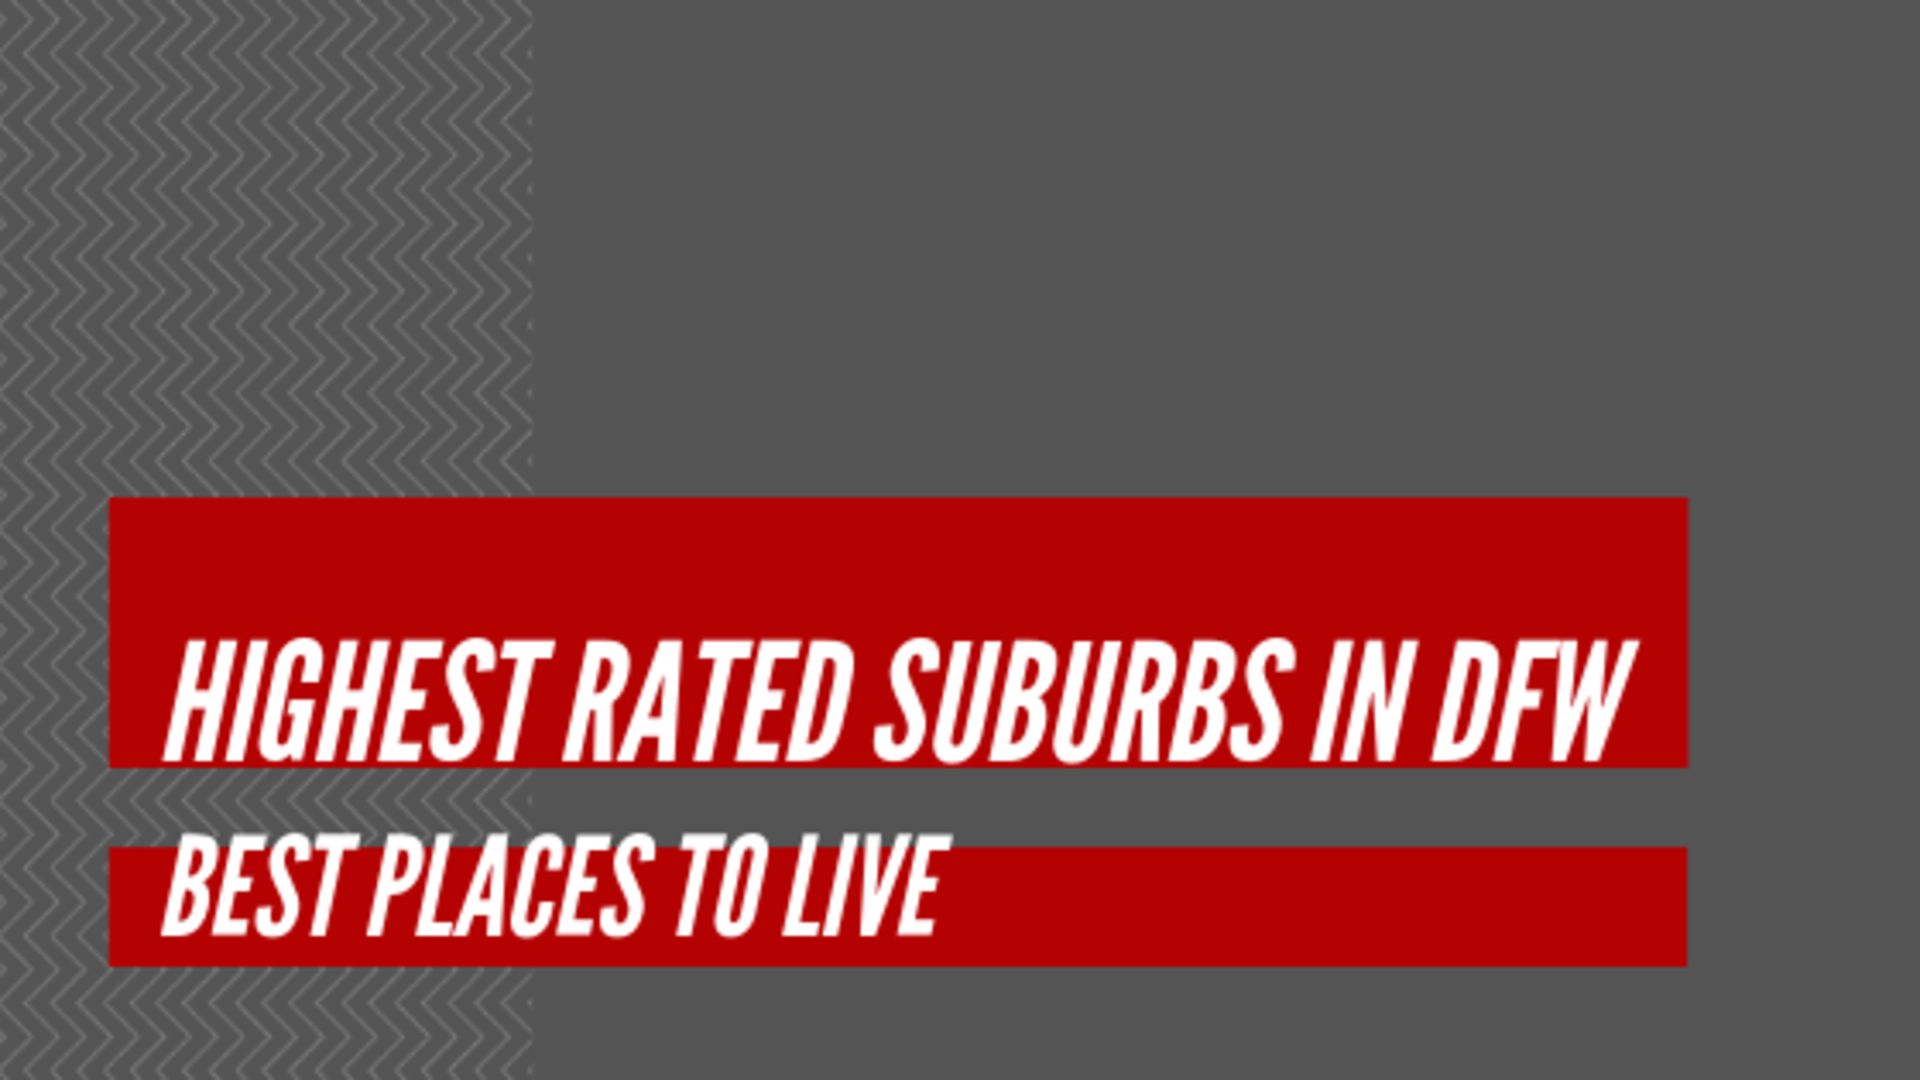 Highest Rated suburbs in DFW